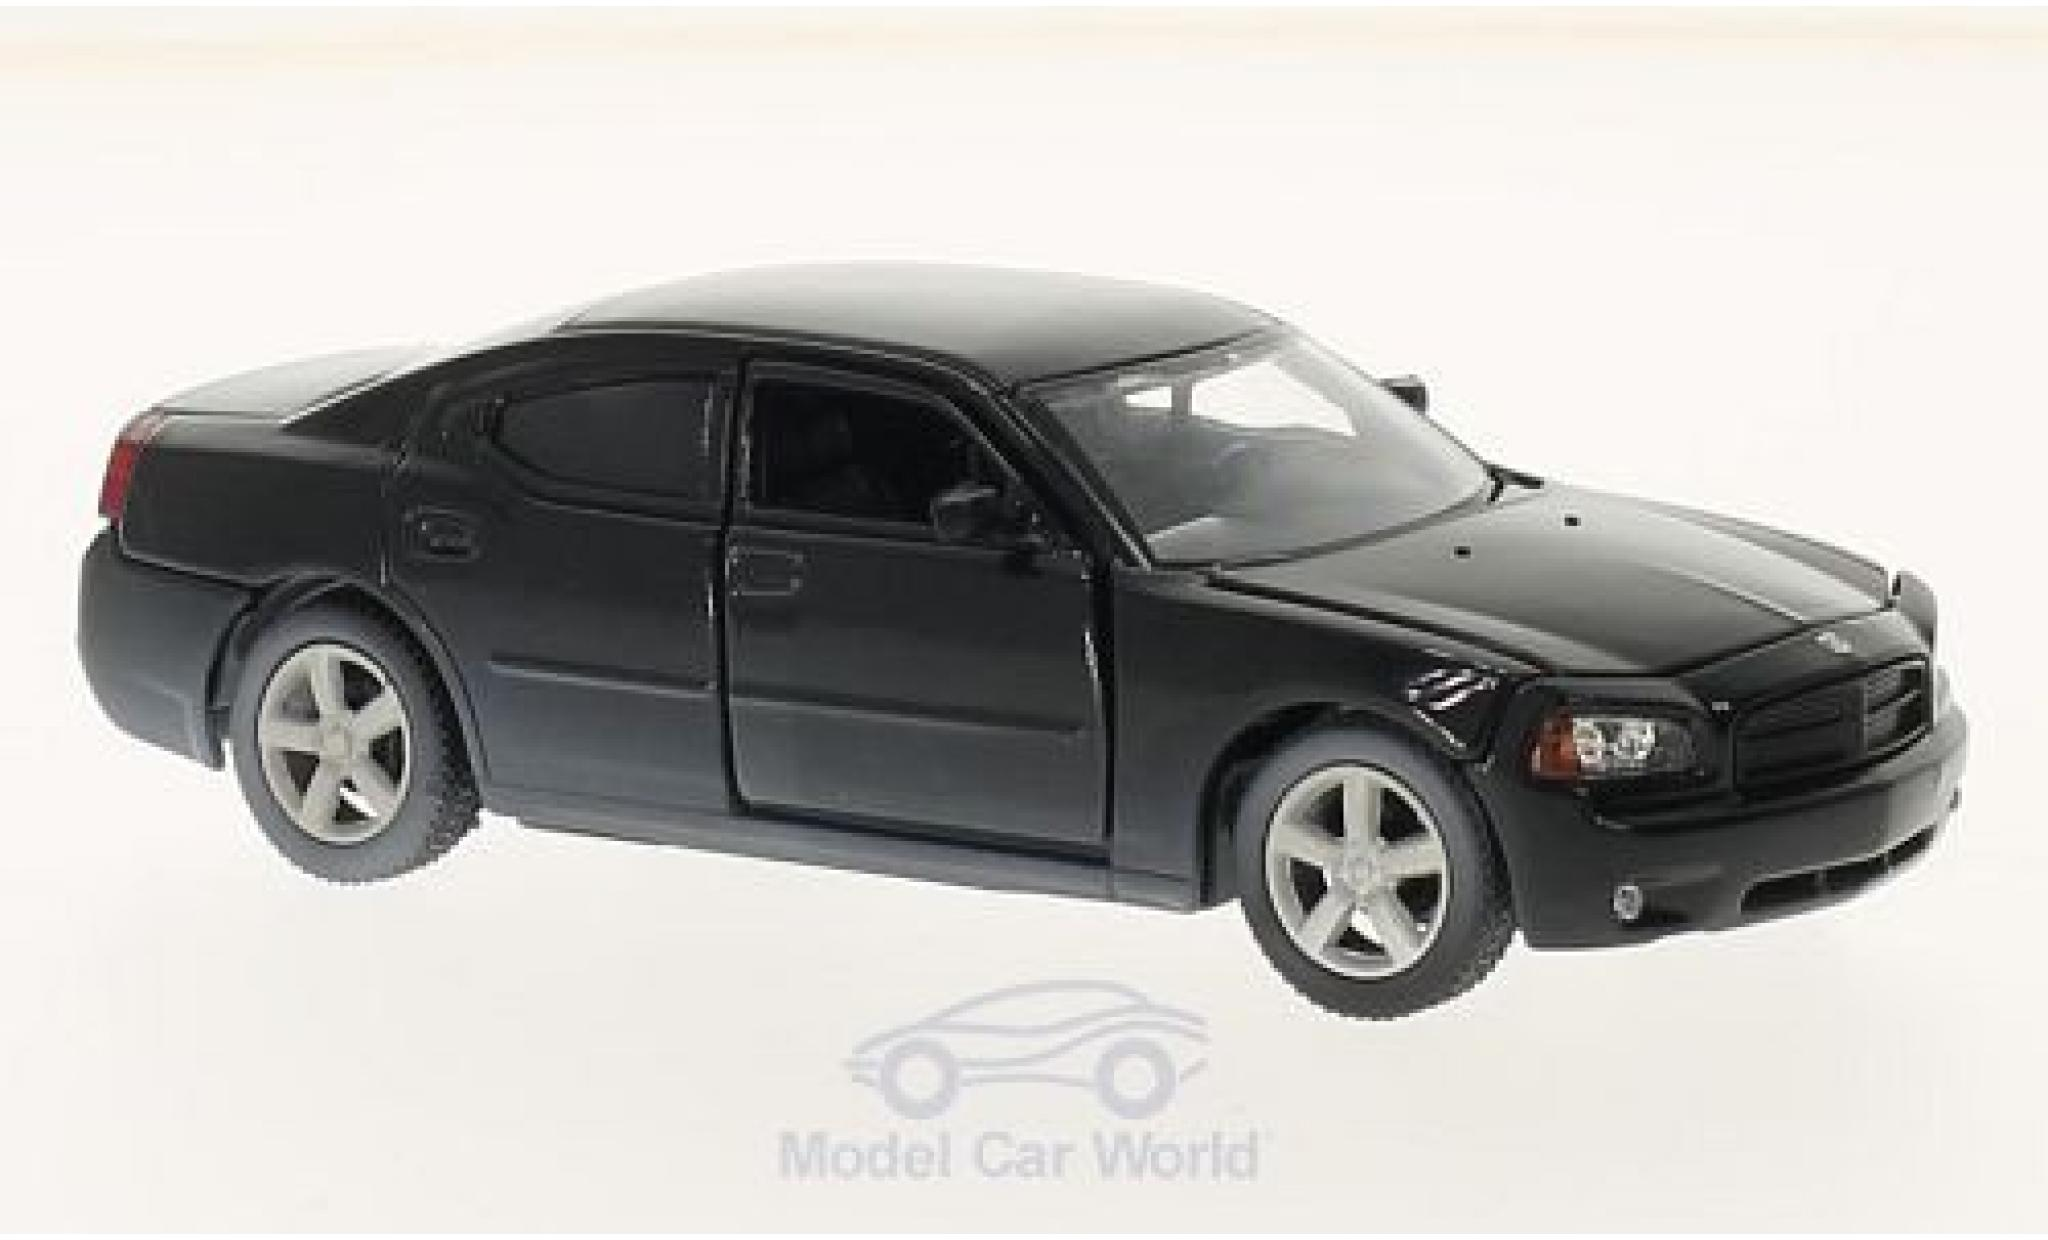 Dodge Charger Police 1/43 Greenlight black The Walking Dead 2006 Daryl Dixons Police